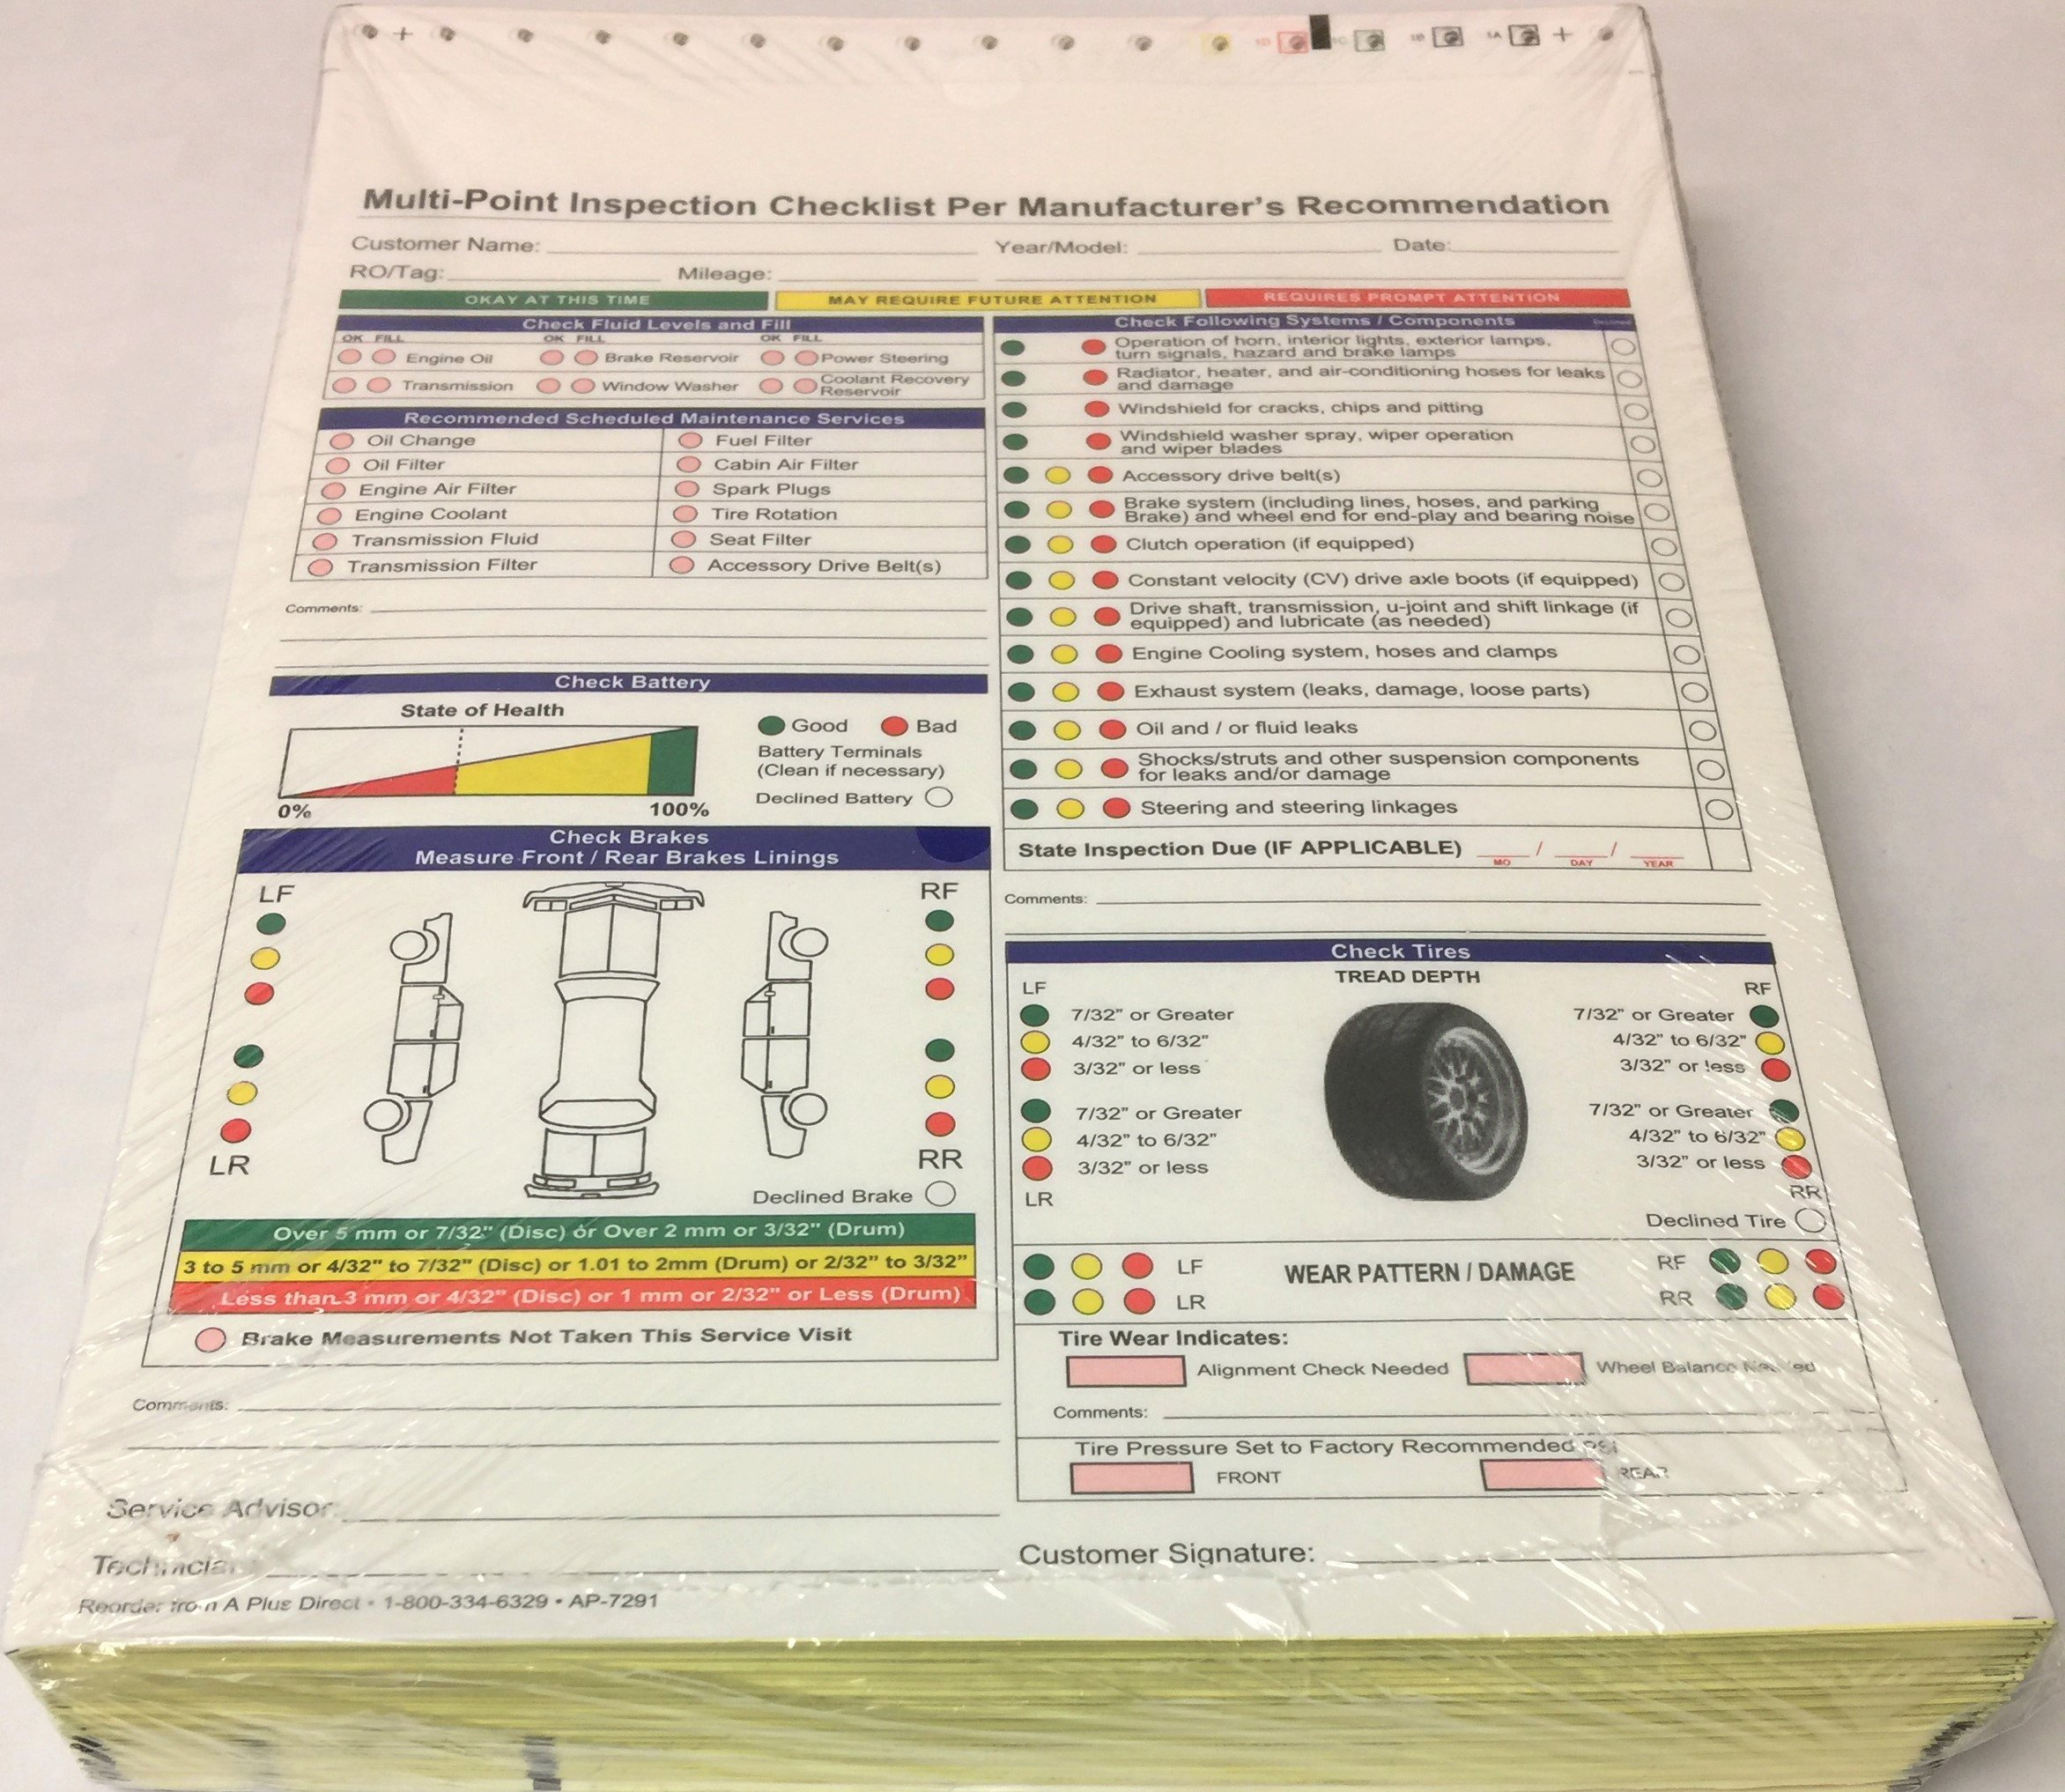 Multi-Point Inspection Forms - (250/pack) 7291 (W15) by A Plus Dealer Supplies (W15) (Image #3)